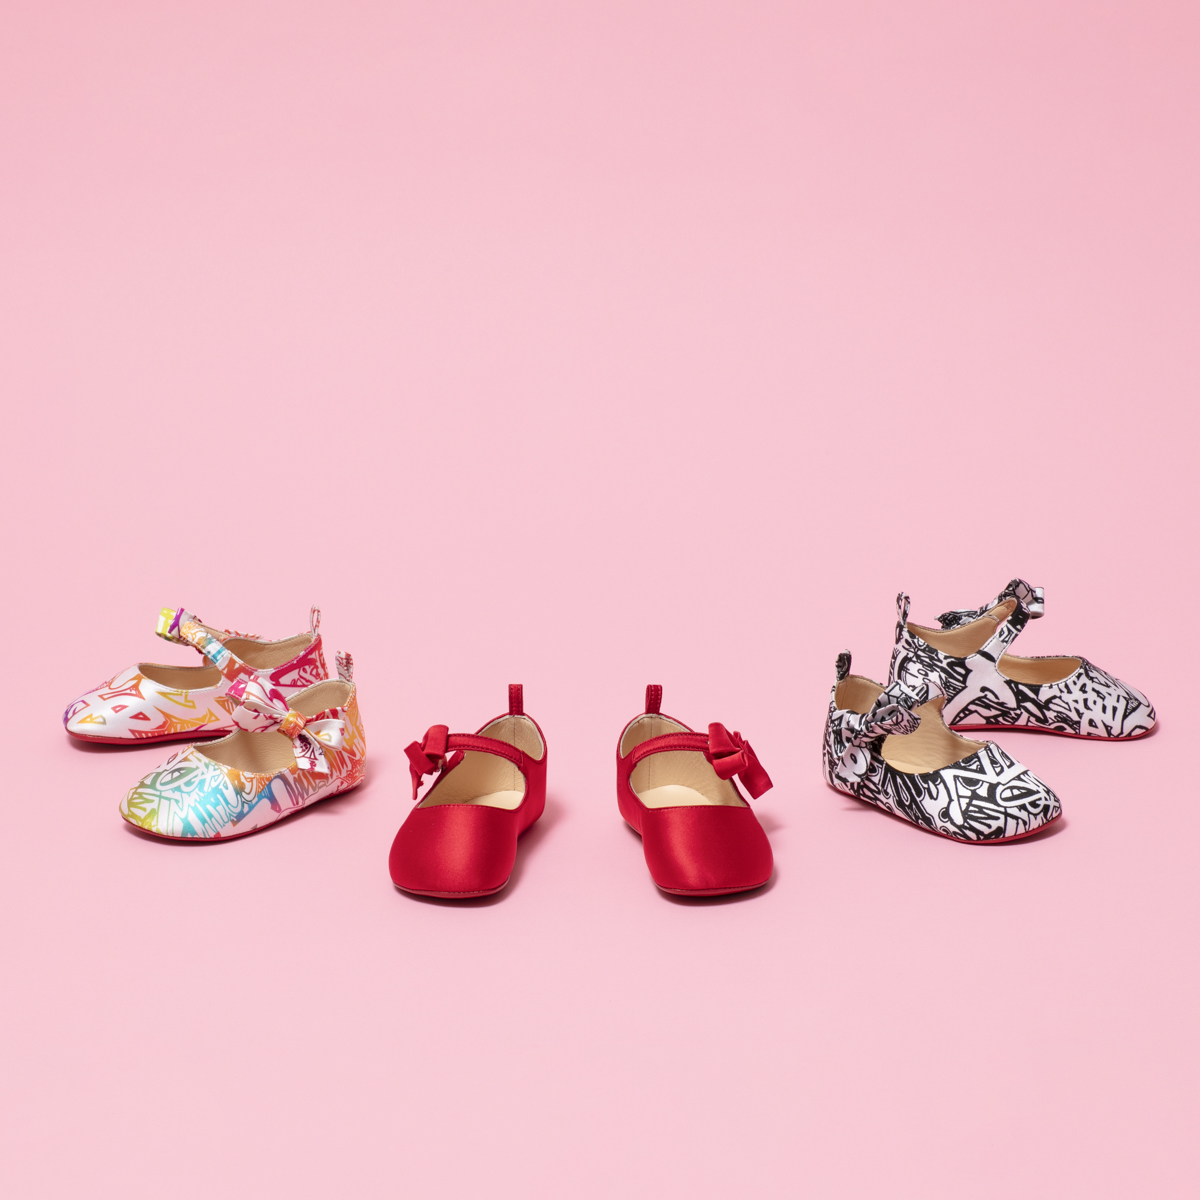 Christian Louboutin Baby capsule